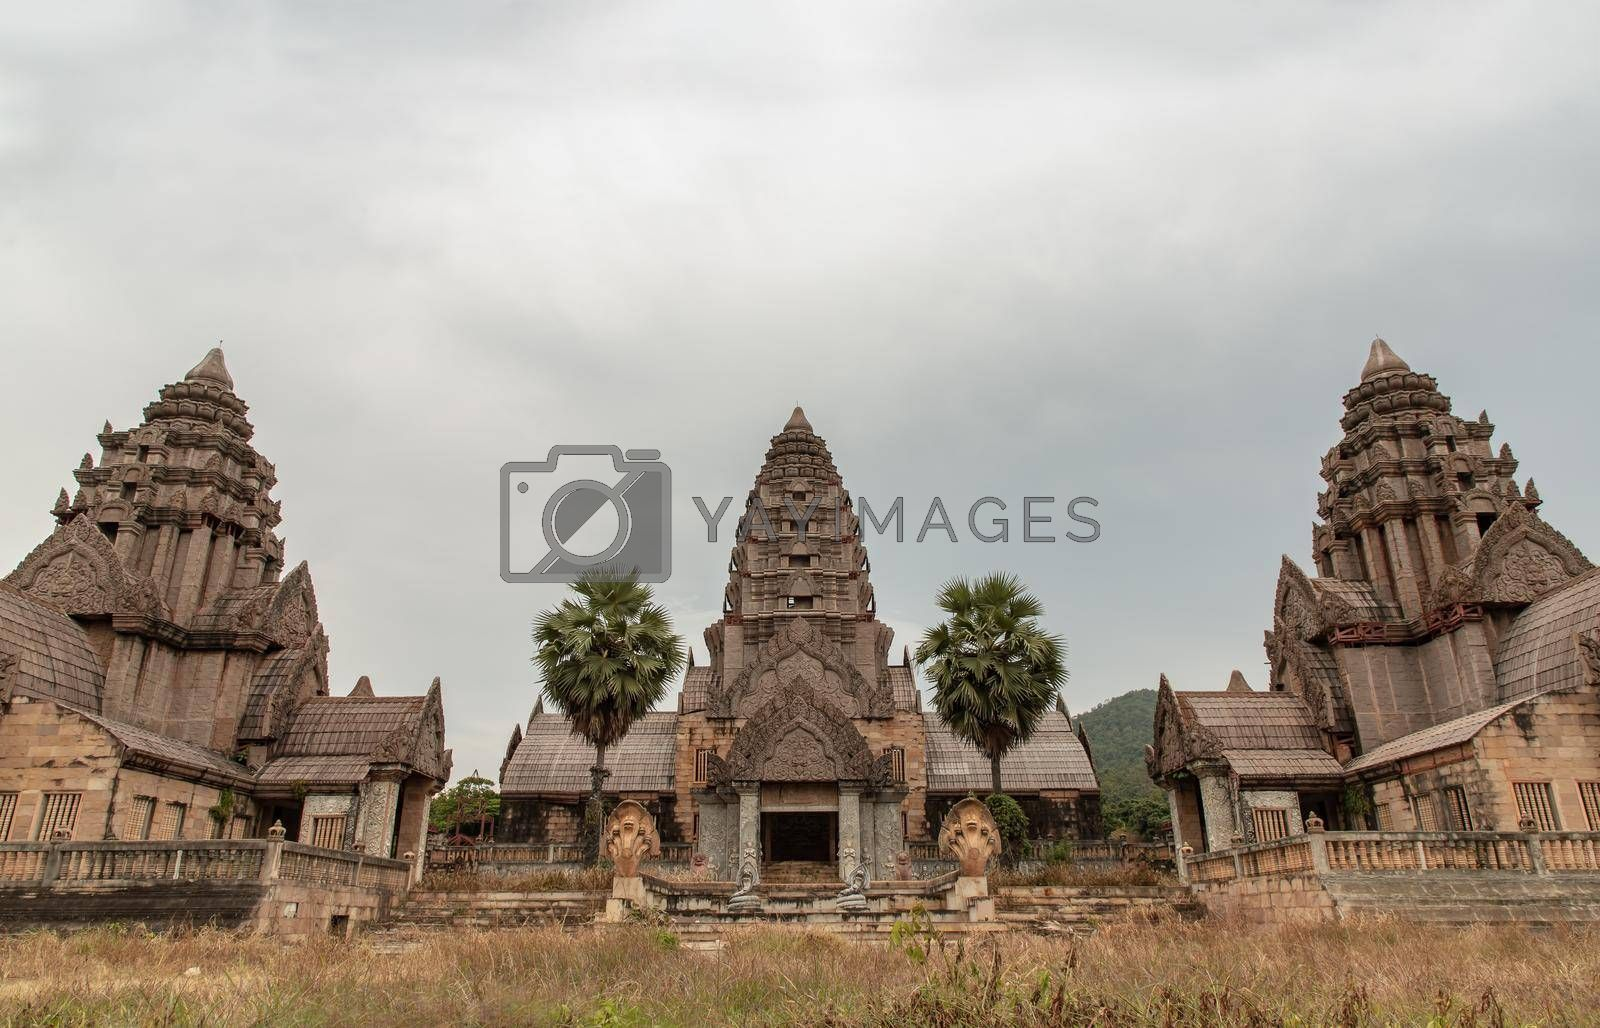 Facade of Old ruined abandoned Mansion view. A historic mansion inspired by the Cambodian of Angkor Wat. Selective focus.